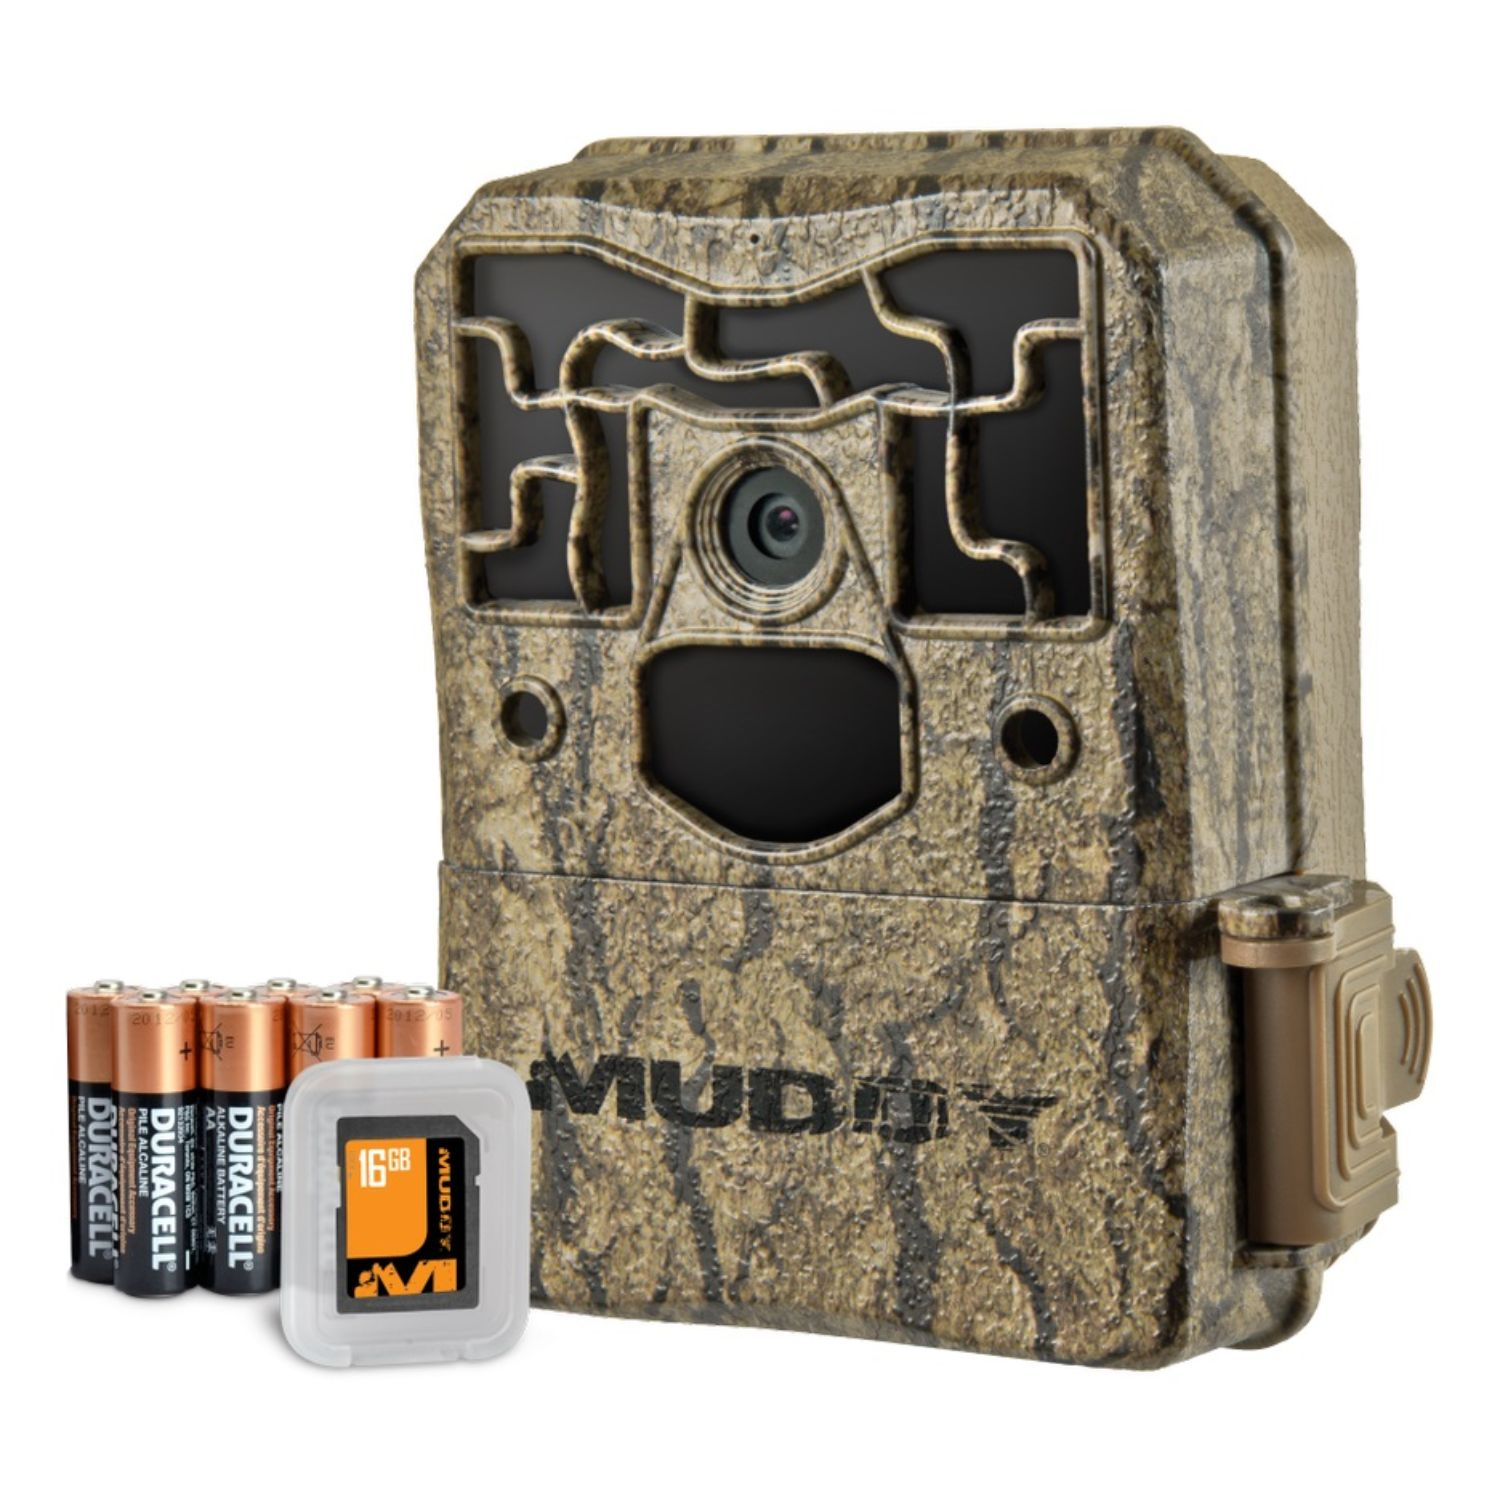 Muddy Pro Cam 24MP with Battery and SD Card